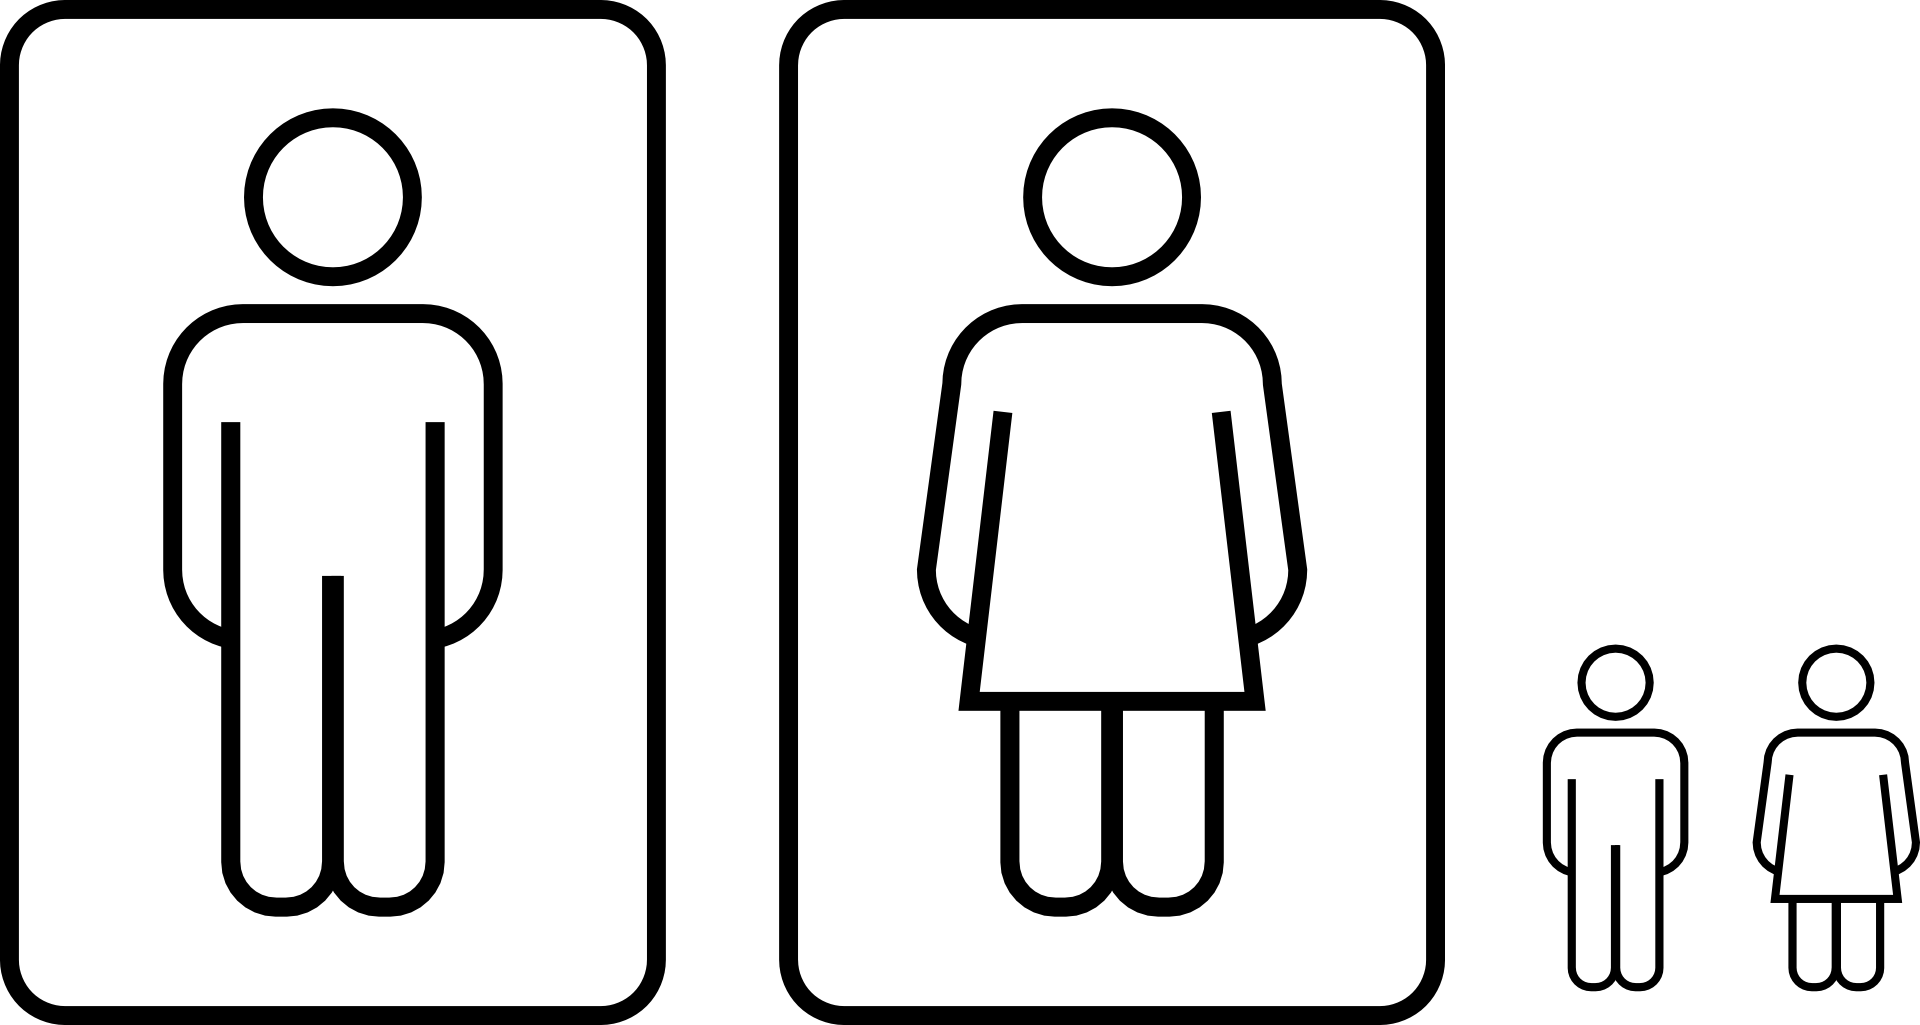 Toilet Icon Png Men And Women Toilet Icon Drawing Animasi Laki Laki Dan Perempuan 4974389 Vippng